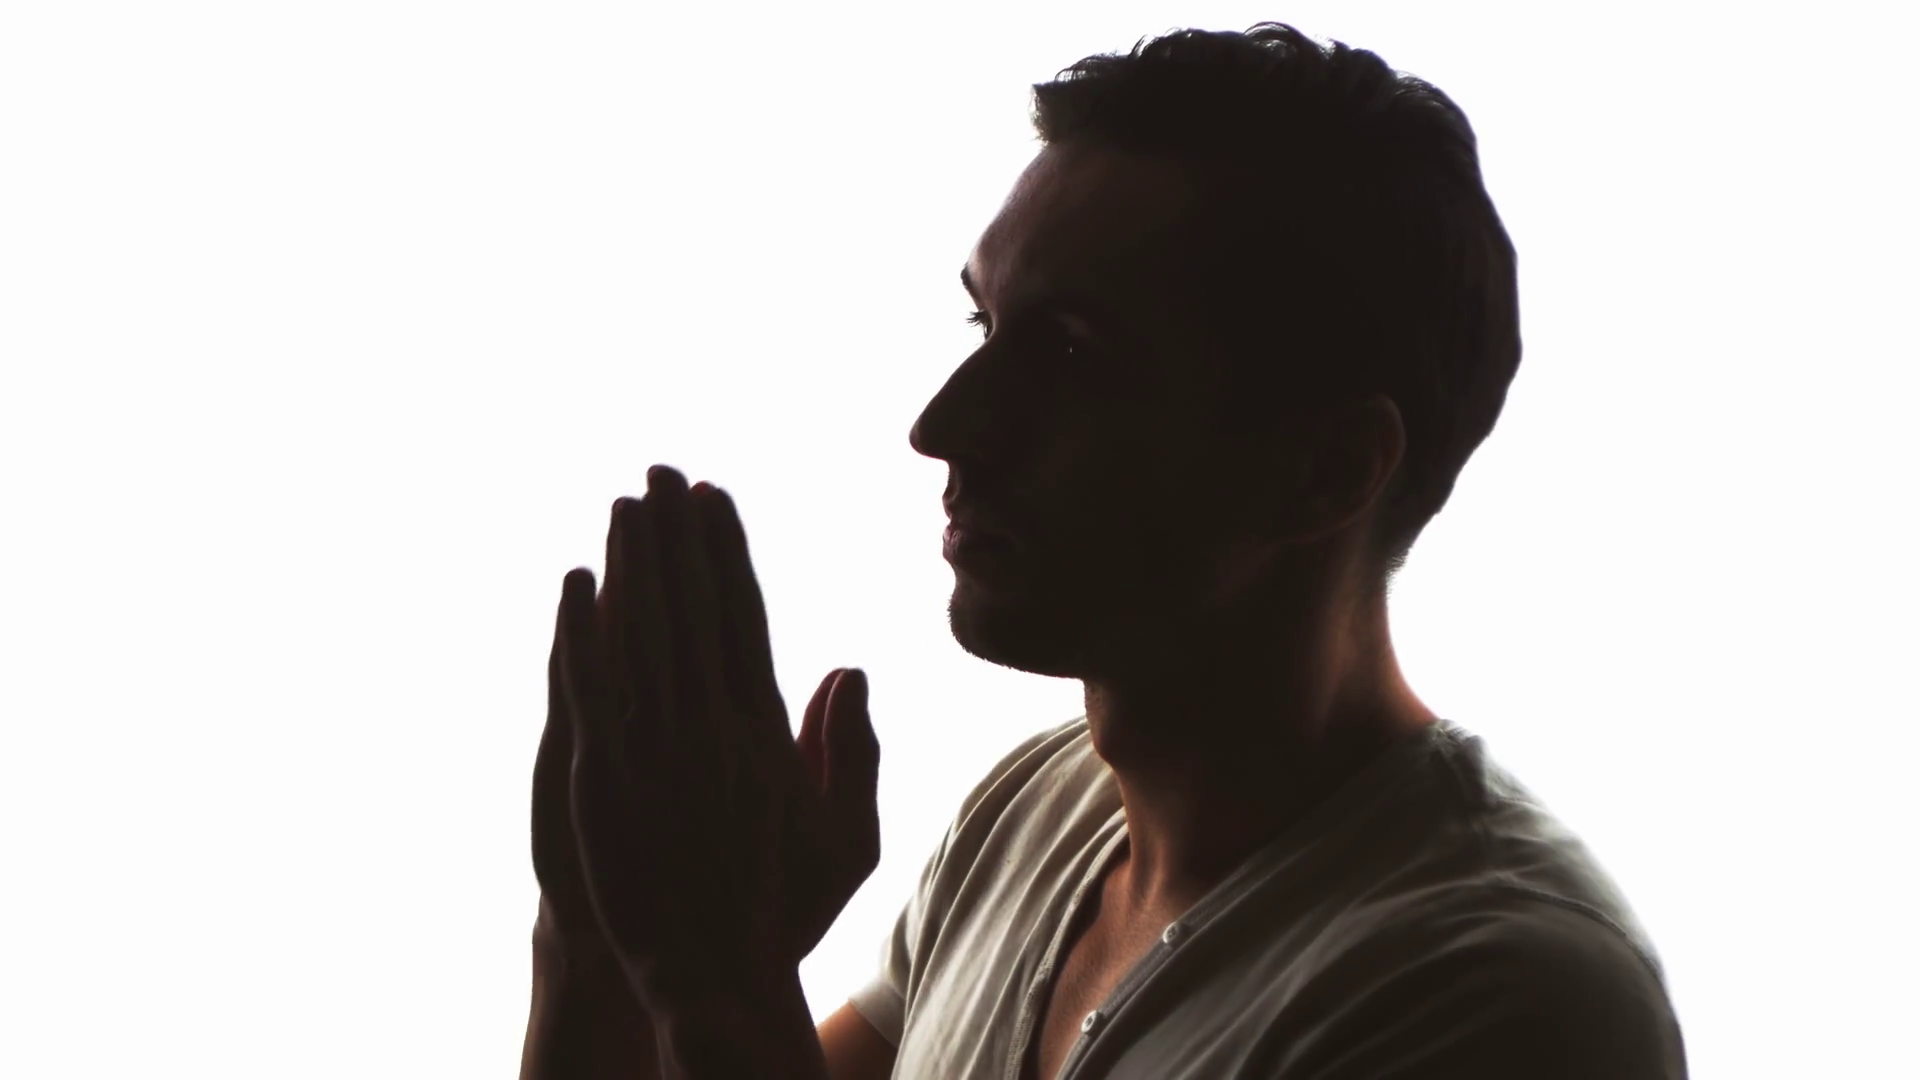 1920x1080 Silhouette Of A Man Praying To God. Concept Of Faith And Religion